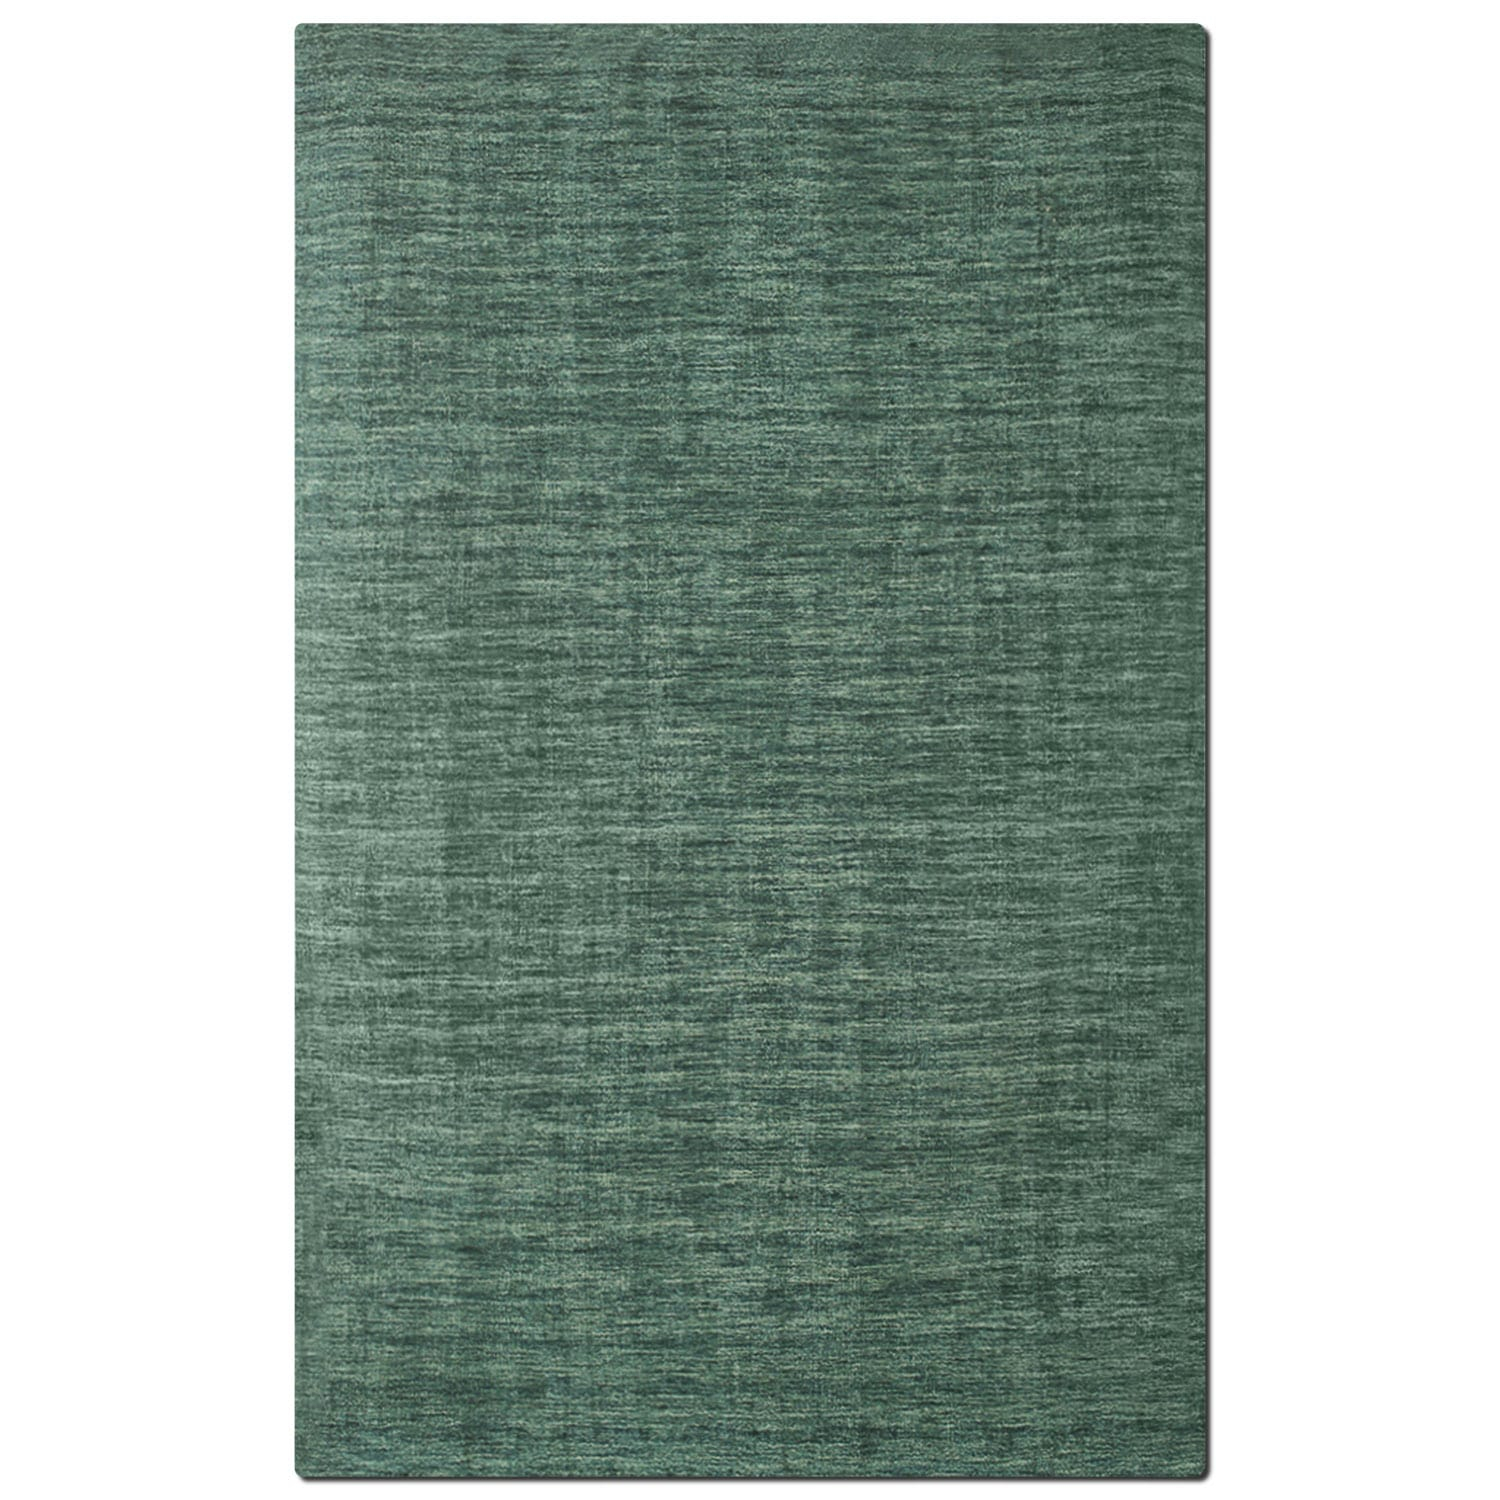 Rugs - Basics 8' x 10' Area Rug - Teal